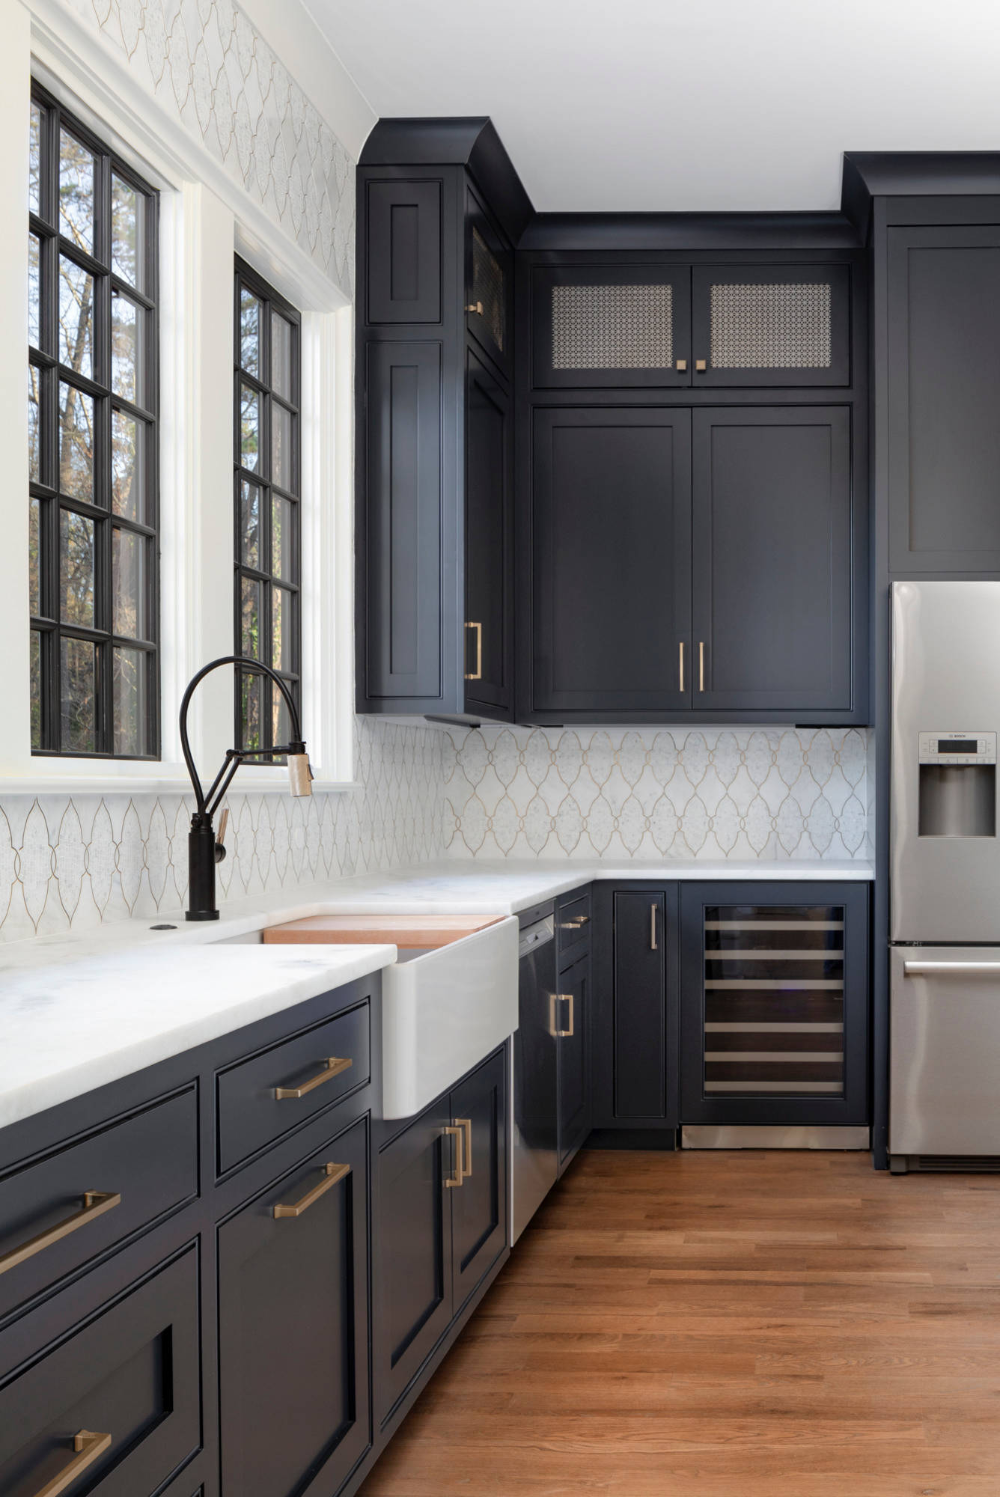 Scullery Unique Traditional Kitchen Design By Pike Properties Houzz In 2020 Modern Kitchen Design White Kitchen Design Dark Blue Kitchen Cabinets